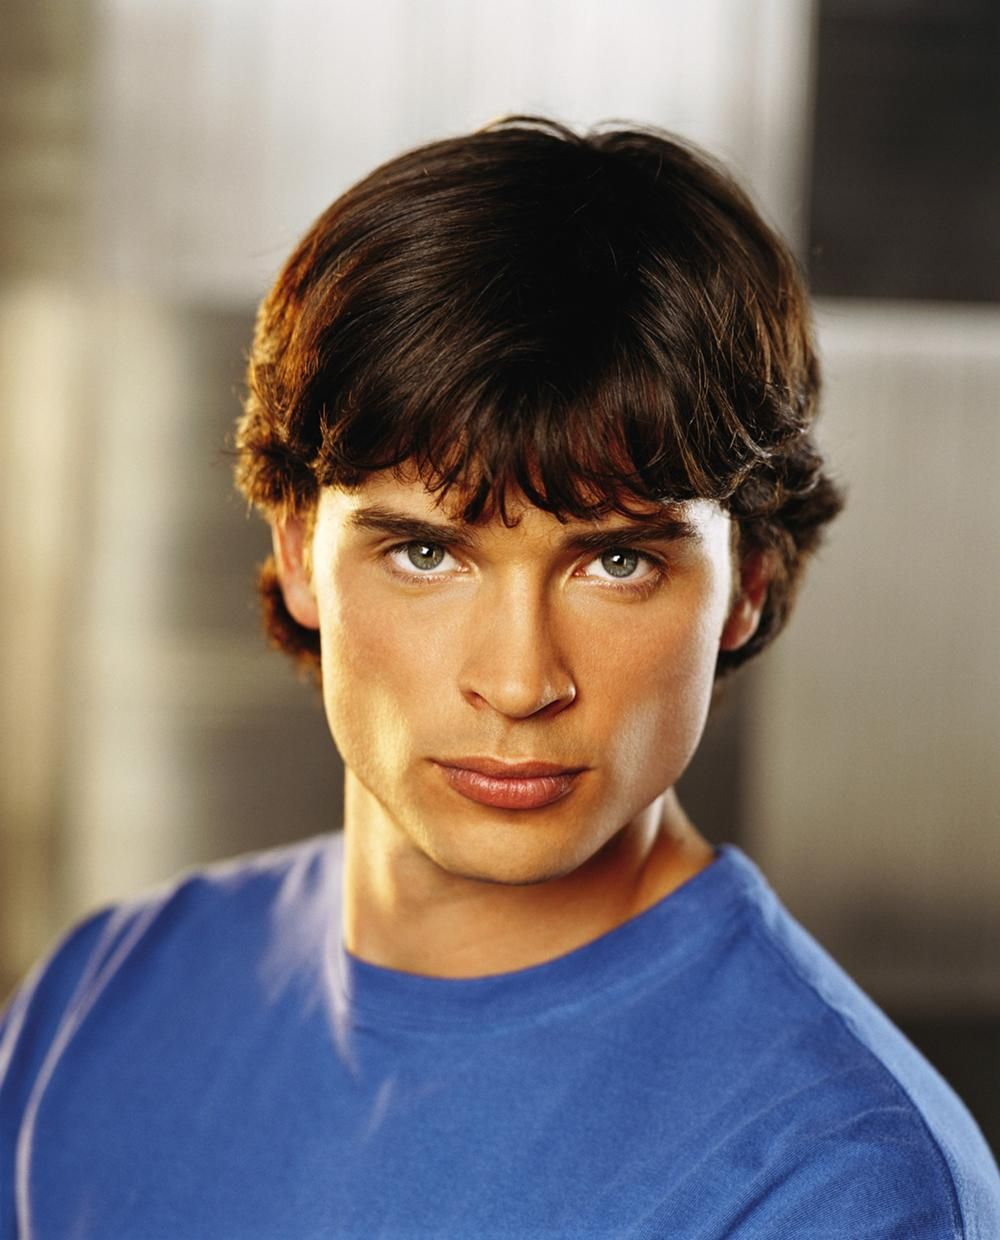 Tom Welling Smallville Wiki Tom Welling Smallville Tom Welling Smallville